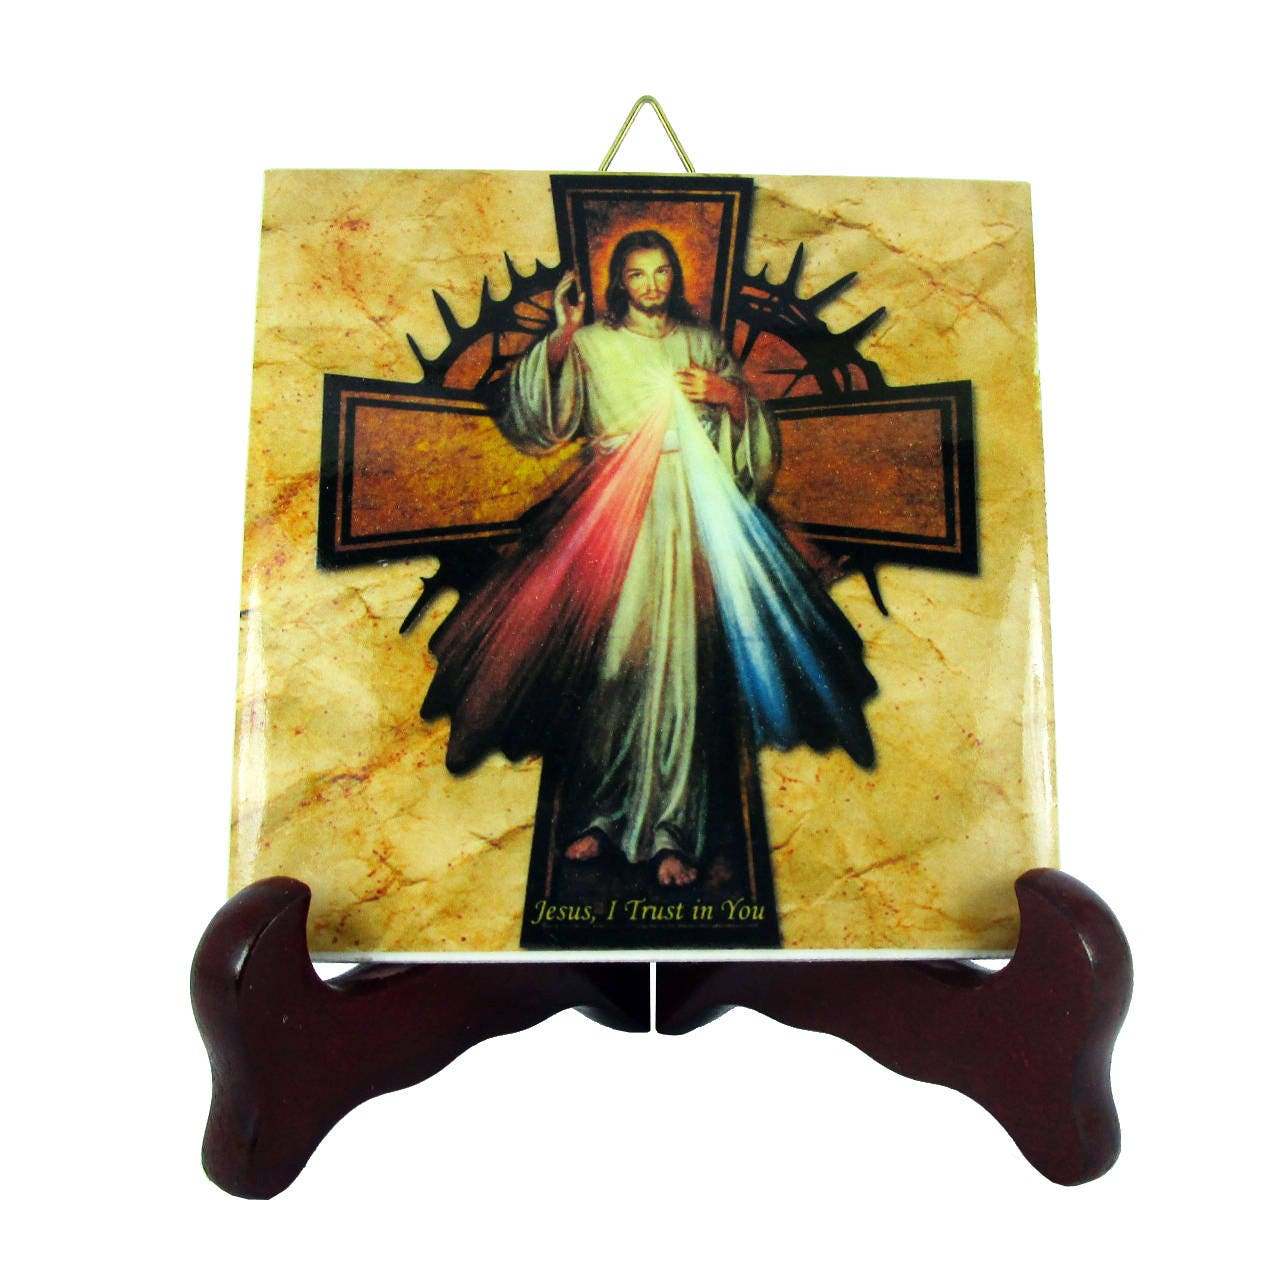 Sugar skull calavera mexicana wall hanging ceramic tile day of catholic gifts jesus christ of divine mercy with cross collectible ceramic tile religious gift idea holy dailygadgetfo Images